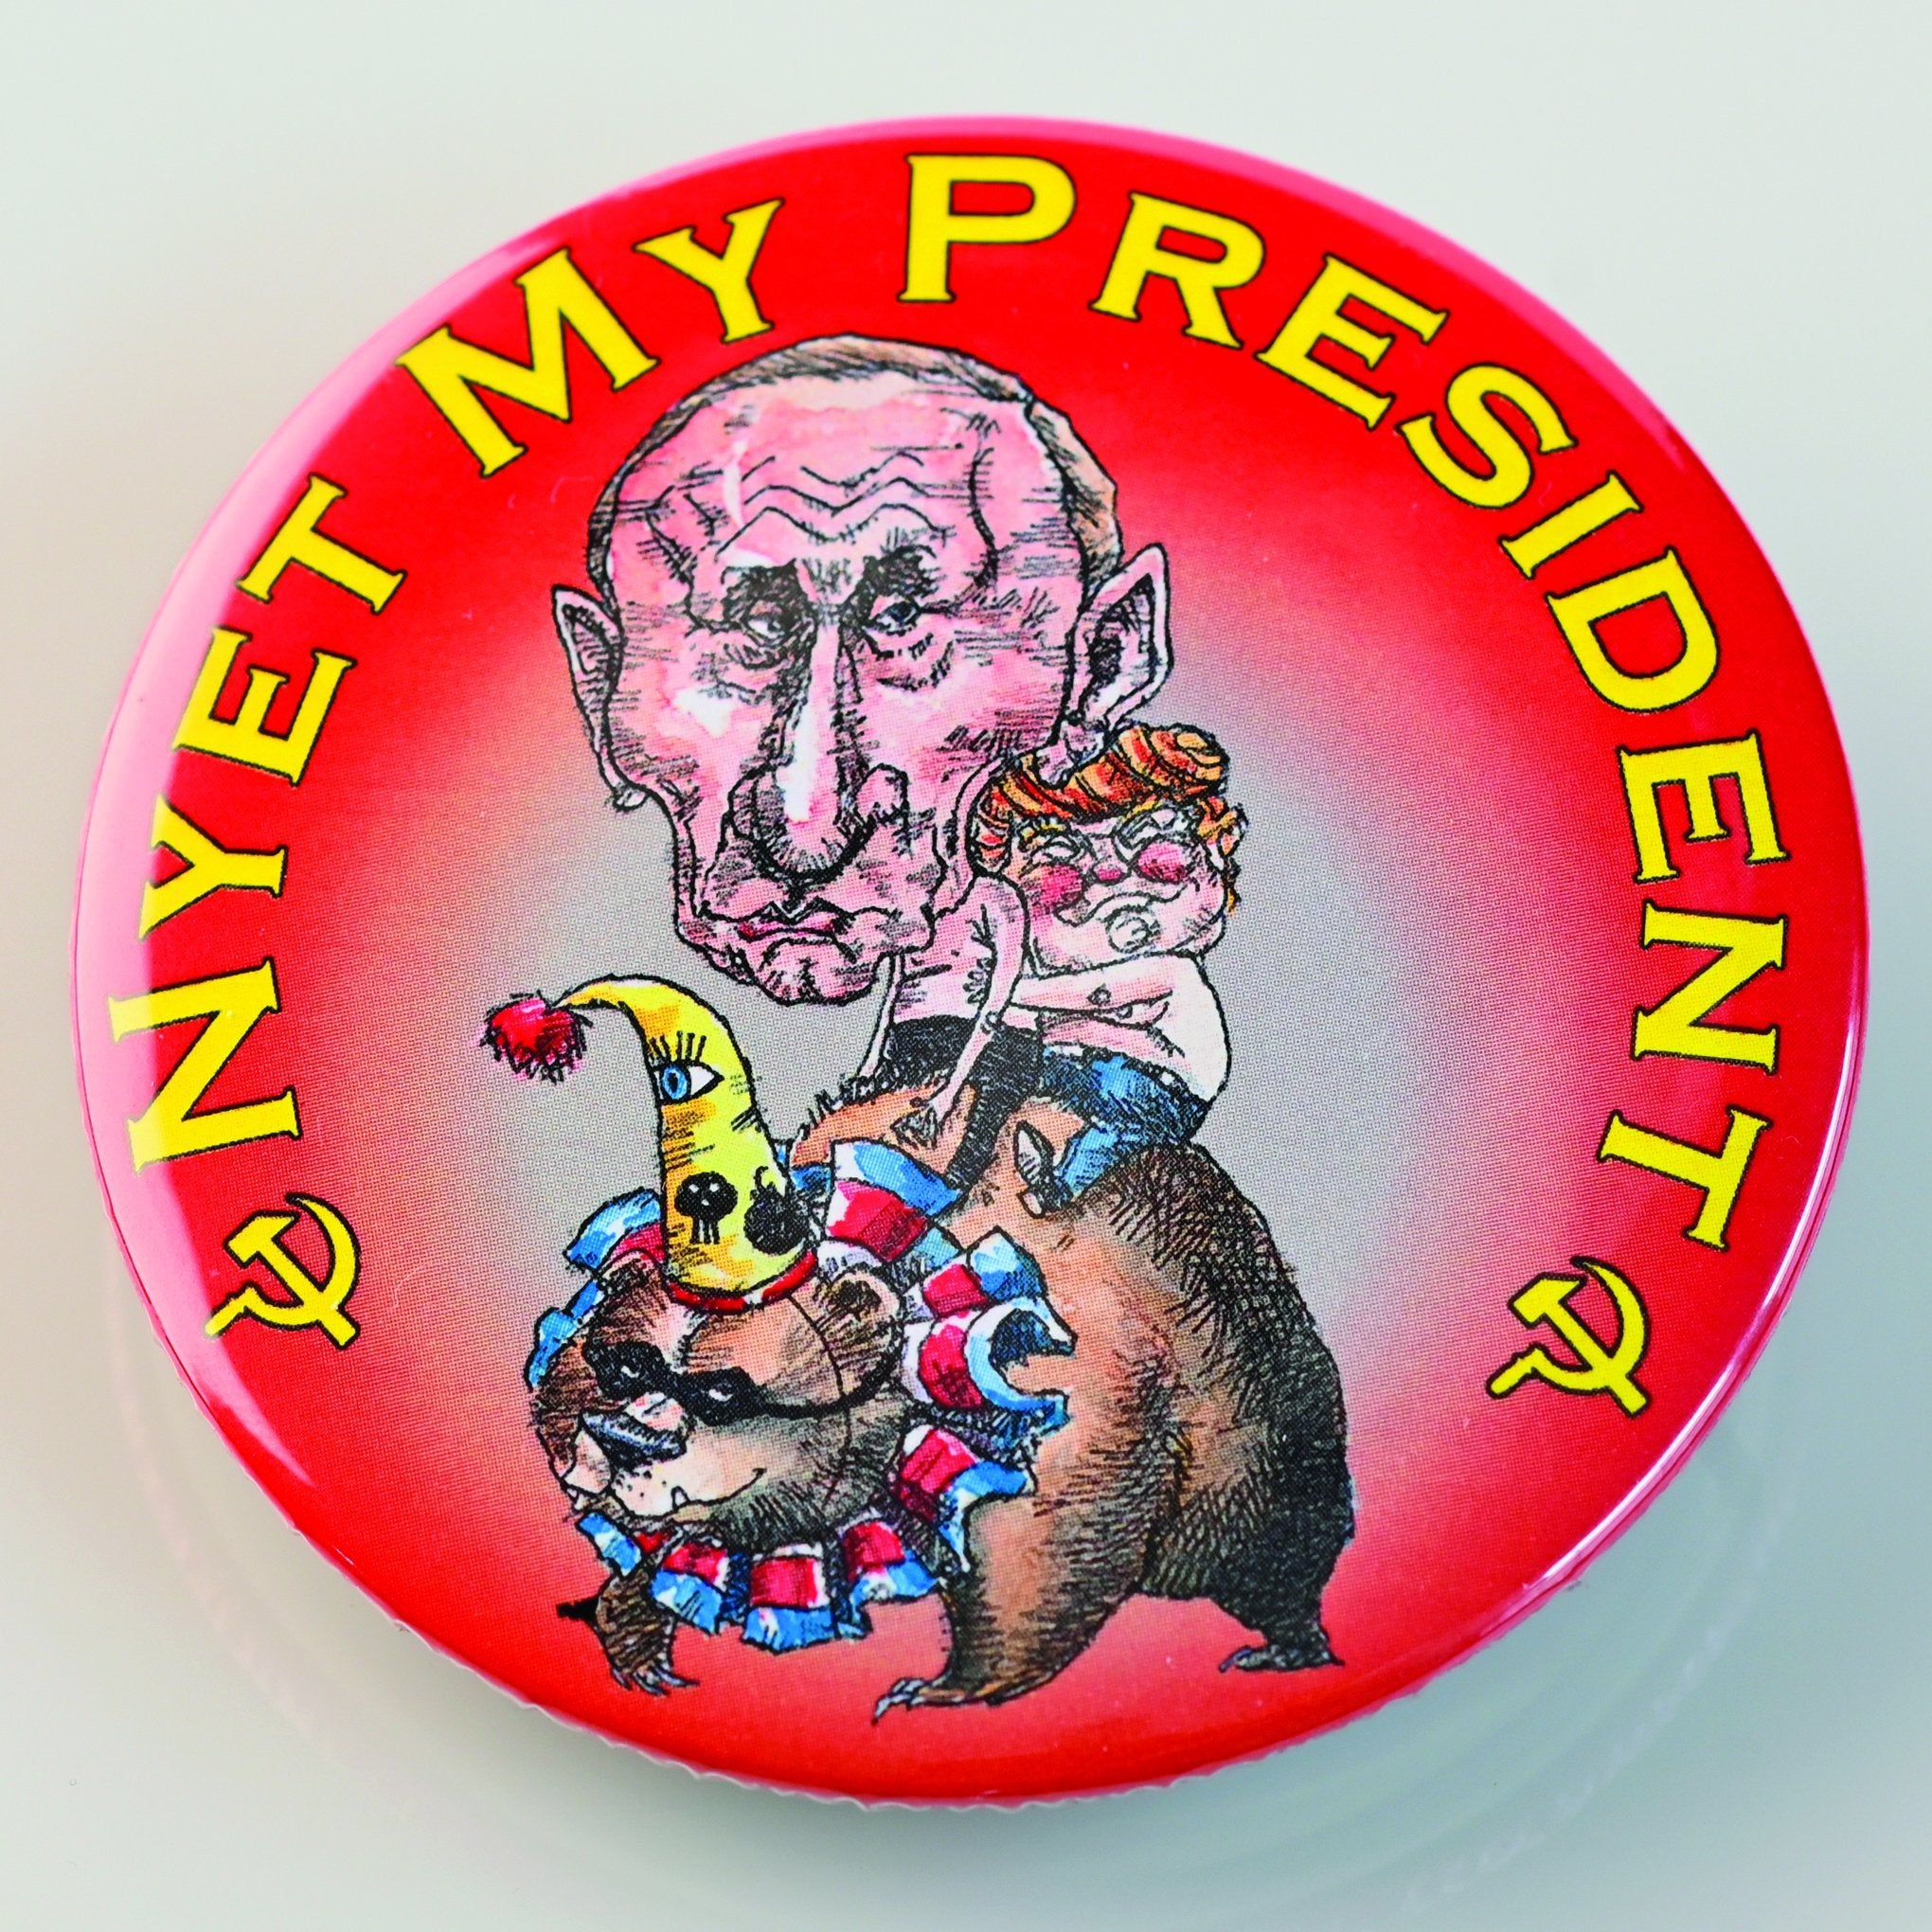 NYET MY PRESIDENT BUTTON-BUTTON-PLAYING POLITICS